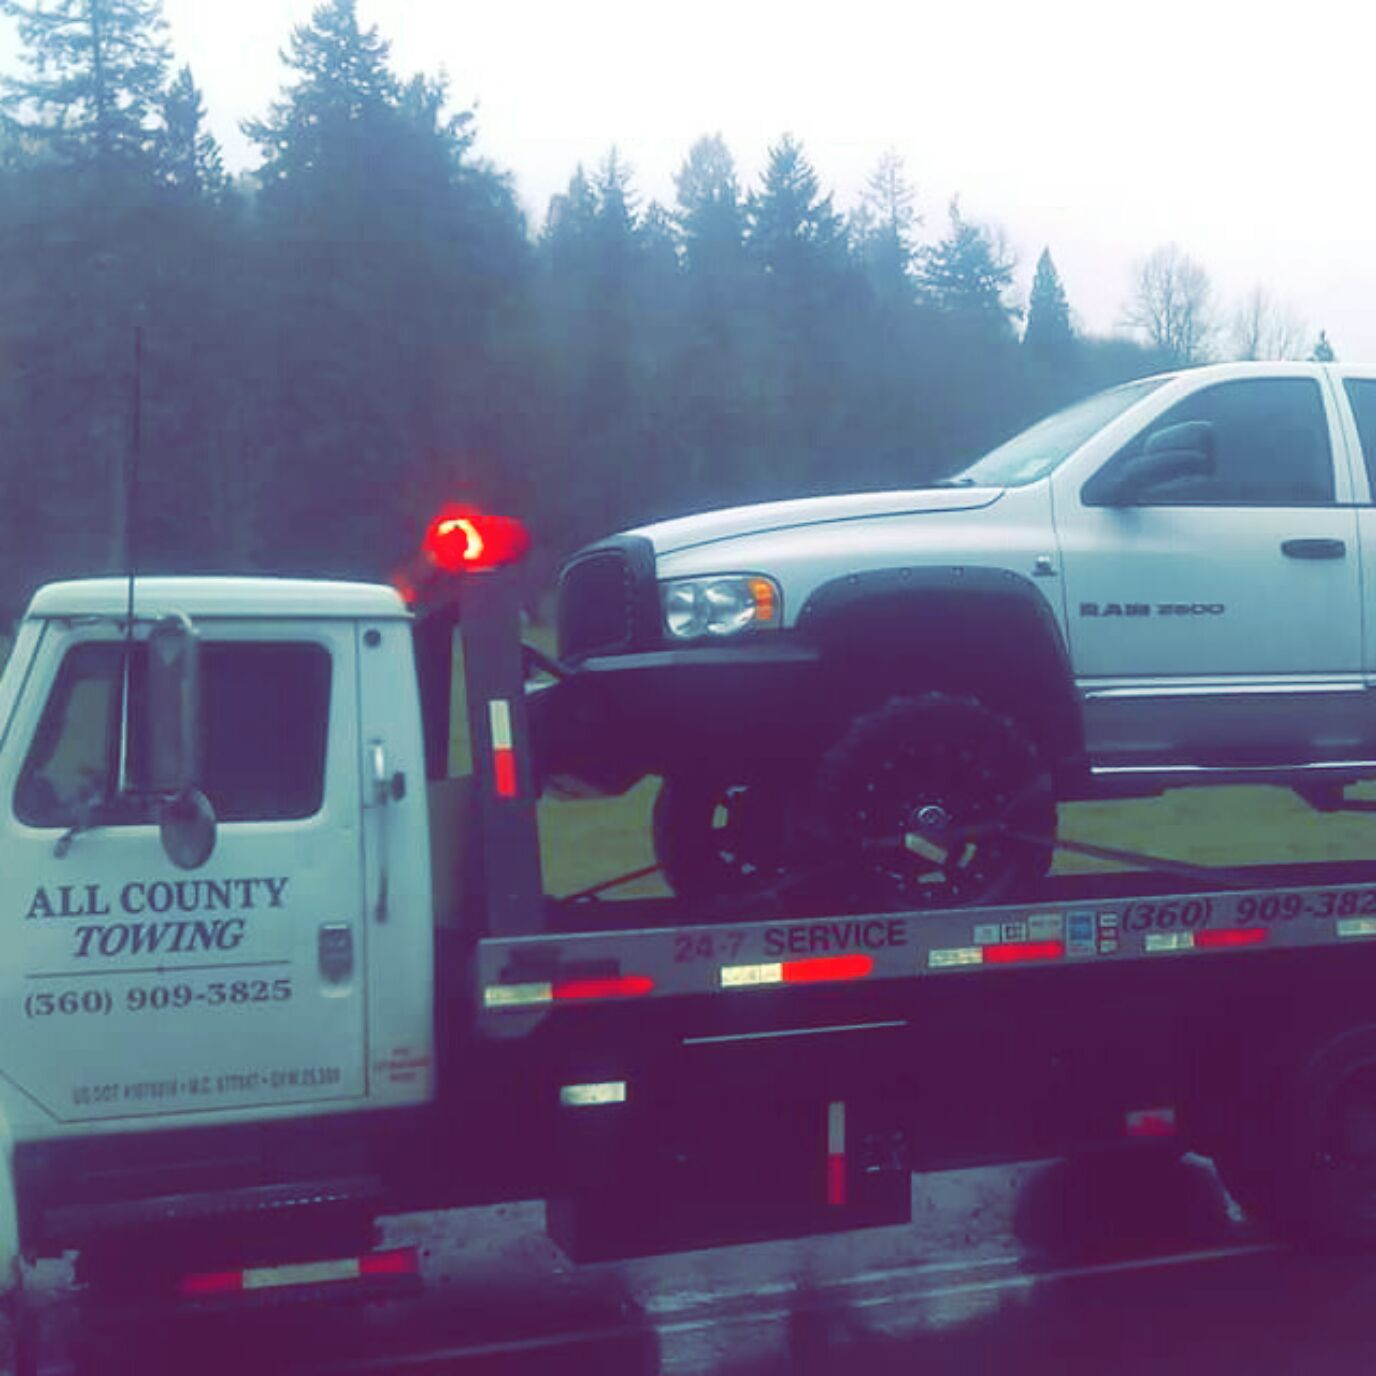 all county hook up towing